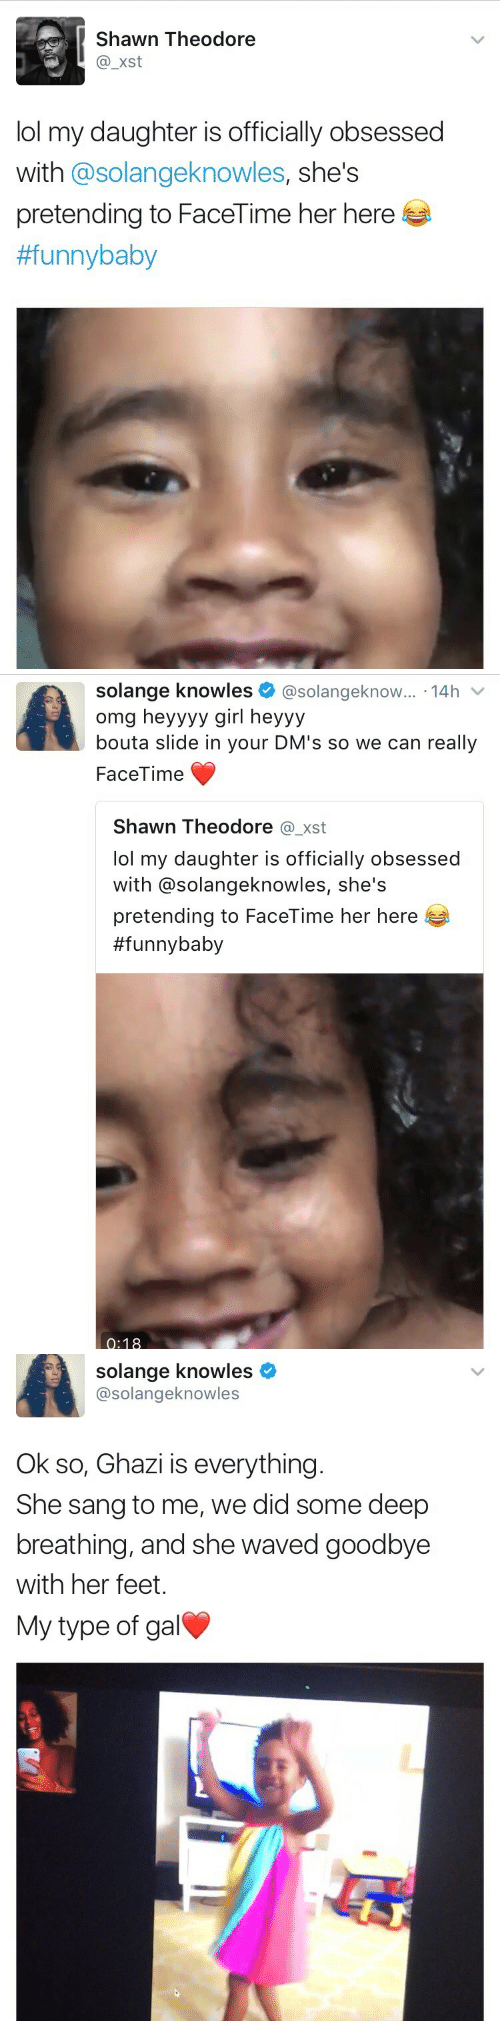 knowles: Shawn Theodore  @_xst  lol my daughter is officially obsessed  with @solangeknowles, she's  pretending to FaceTime her here  #funnybab   solange knowles @solangeknow... 14h  omg heyyyy girl heyyy  bouta slide in your DM's so we can really  FaceTime  Shawn Theodore @xst  lol my daughter is officially obsessed  with @solangeknowles, she's  pretending to FaceTime her here  #funnybaby  0:18   solange knowles  @solangeknowles  Ok so, Ghazi is everything  She sang to me, we did some deep  breathing, and she waved goodbye  with her feet.  My type of gal